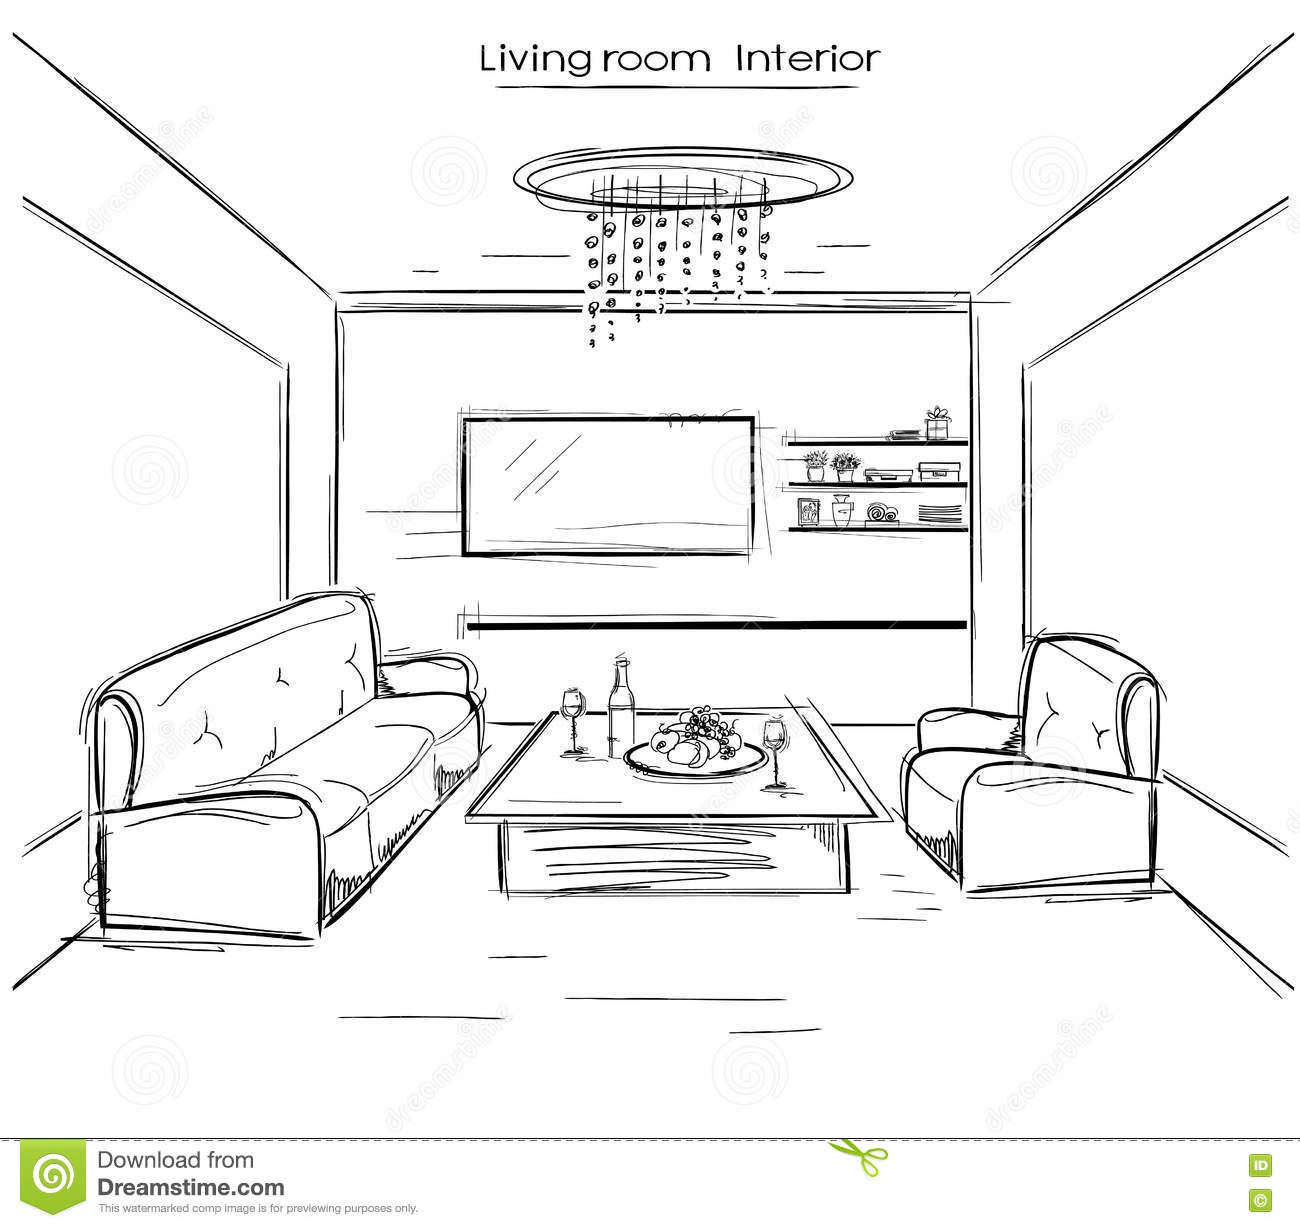 Living room interior vector black hand drawing for Drawing room interior